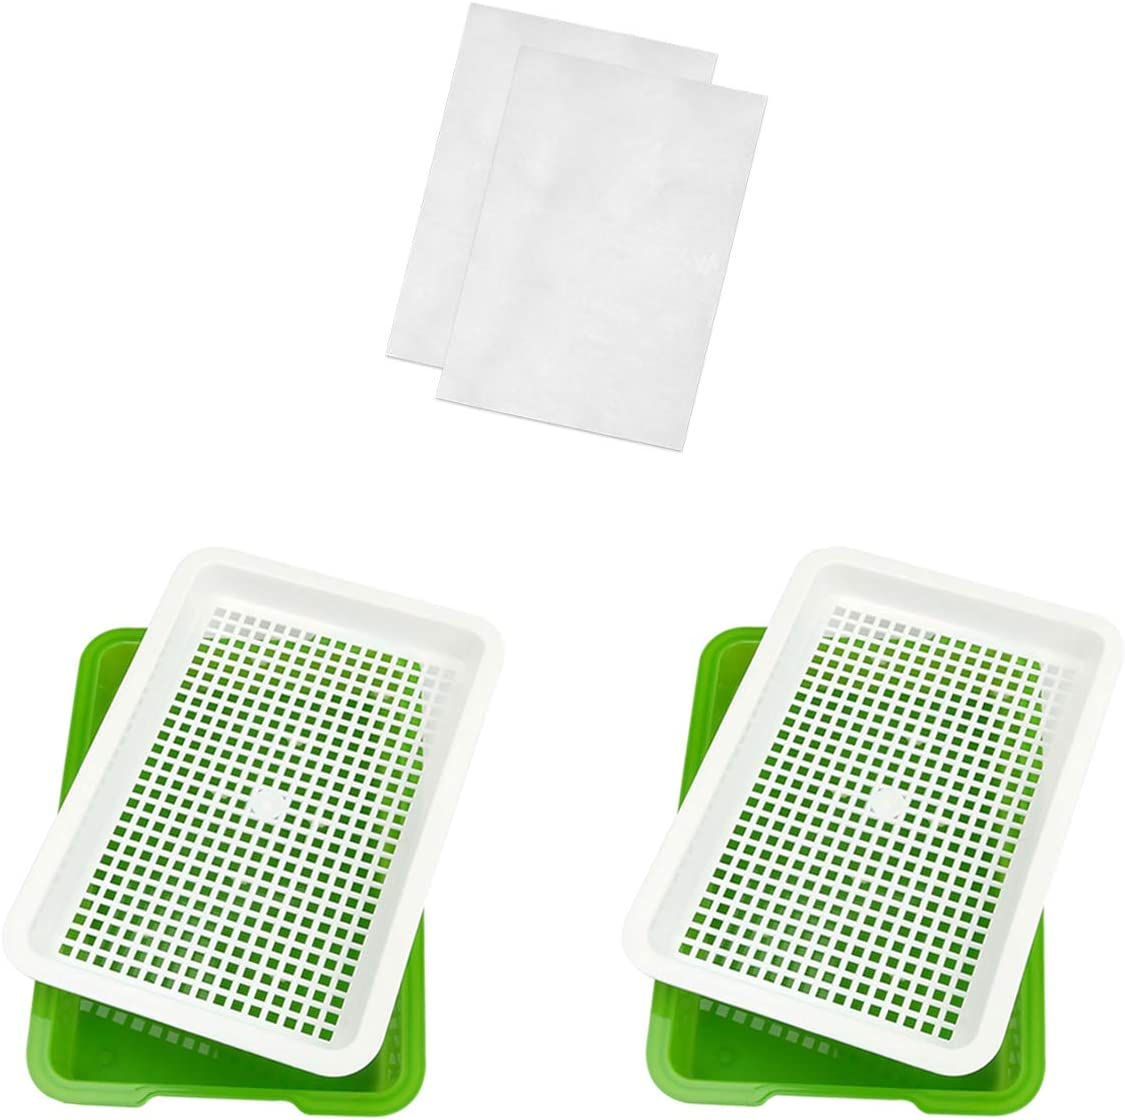 Seed Sprouter Tray, 2 Pack Seed Germination, Wheatgrass Cat Grass Microgreens Growing Kit, Great for Garden Home Office (2 Set(12.8